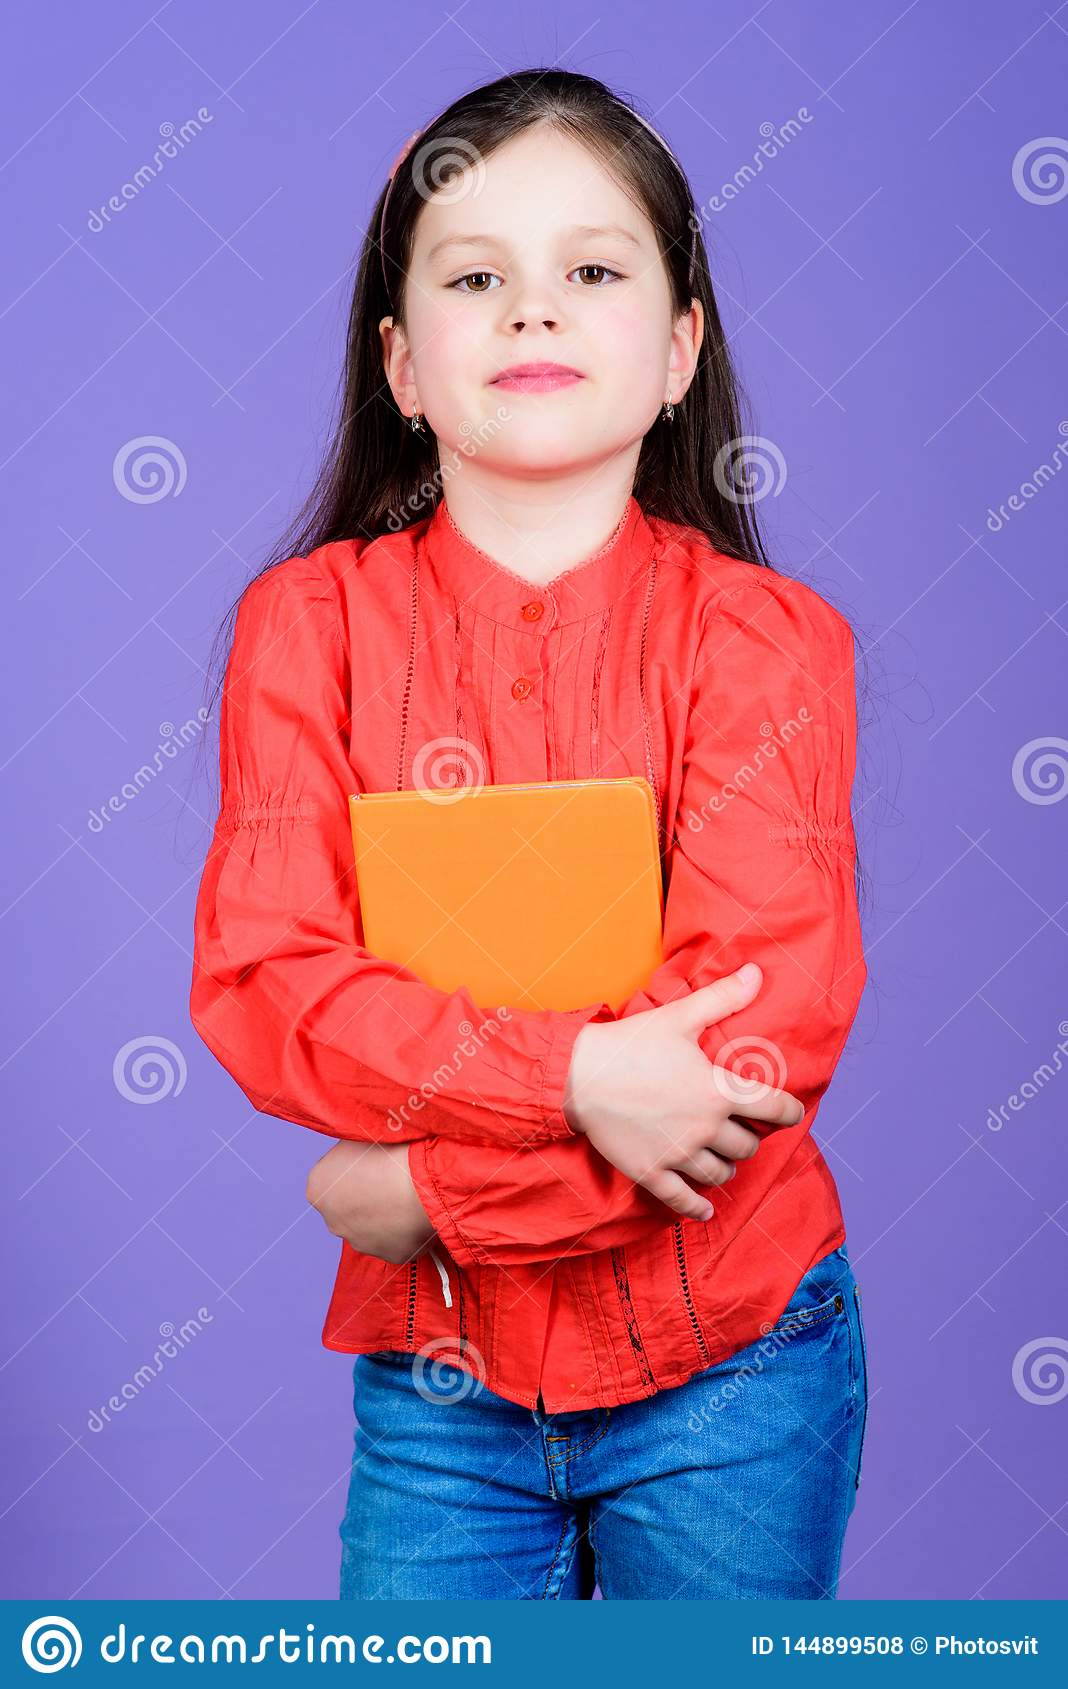 Girl hold book violet background. Kid show book. Book concept. Wise quotes. Literature club. Development and education